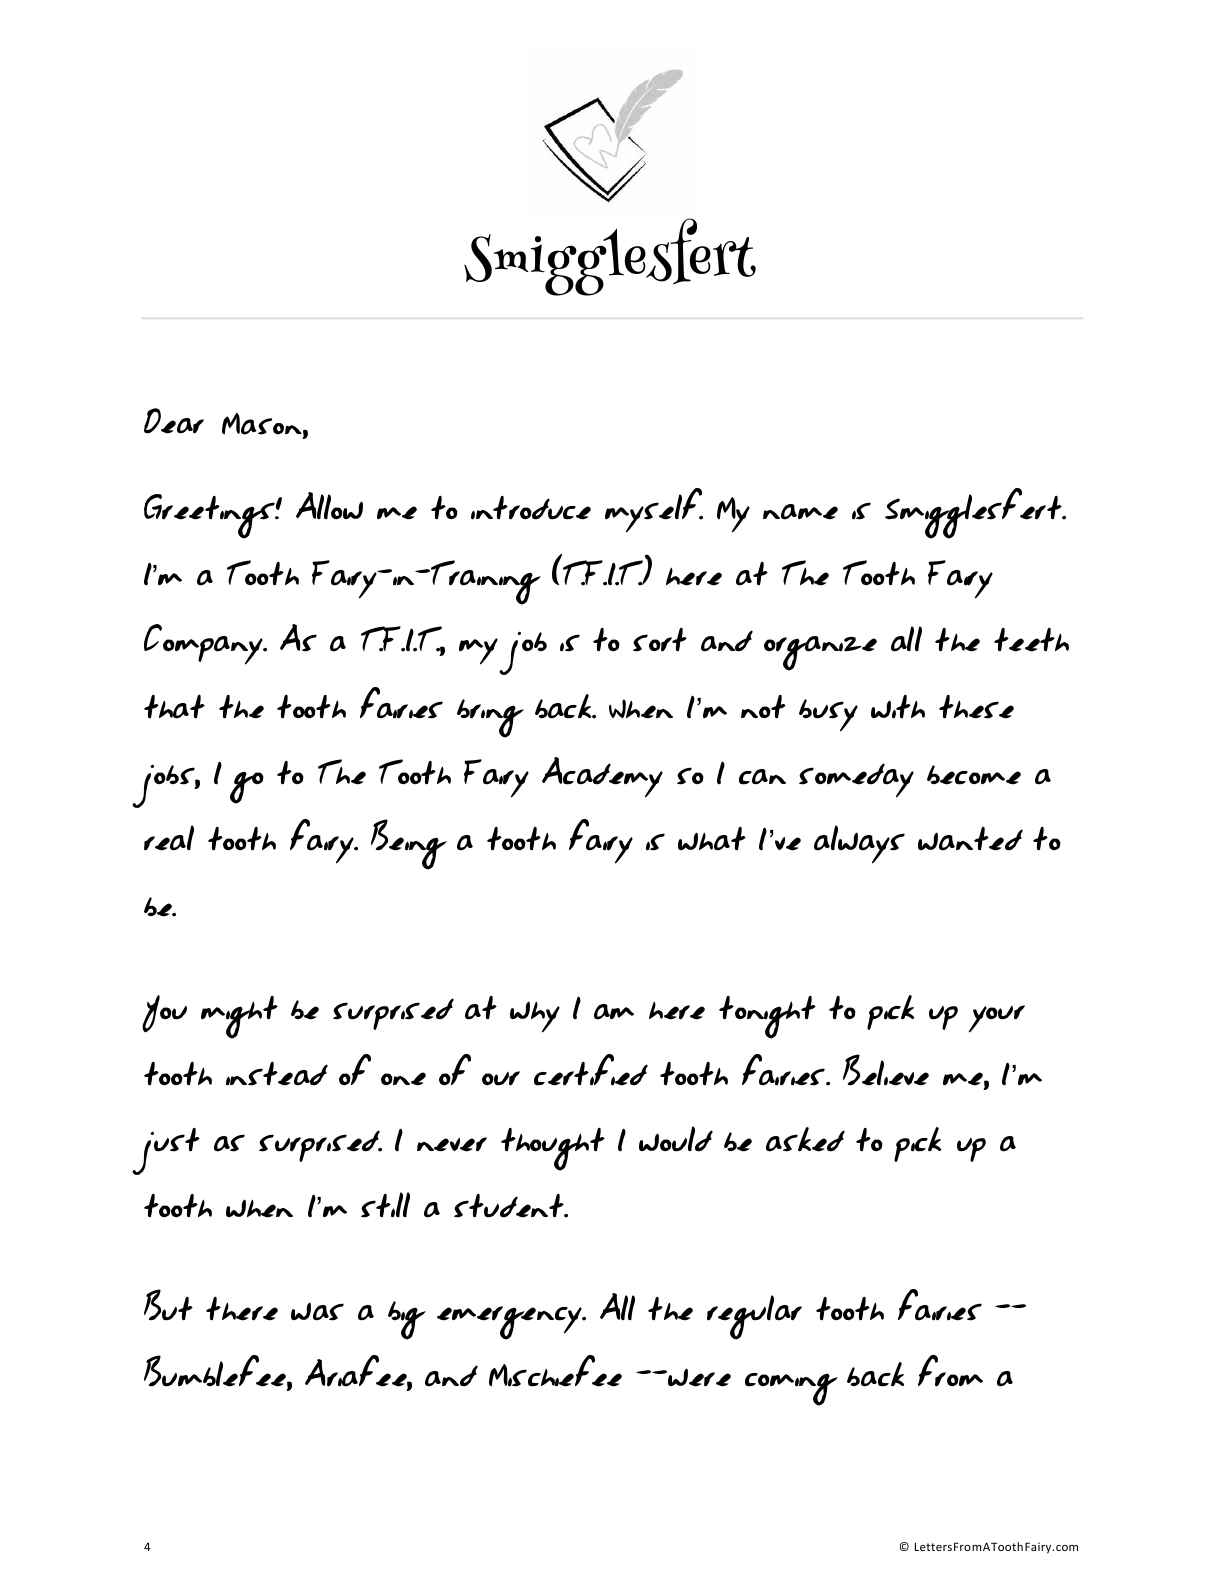 Free tooth fairy letter by Tooth-Fairy-in-Training and emotional sneezer, Smigglesfert.  lettersfromatoothfairy.com/free